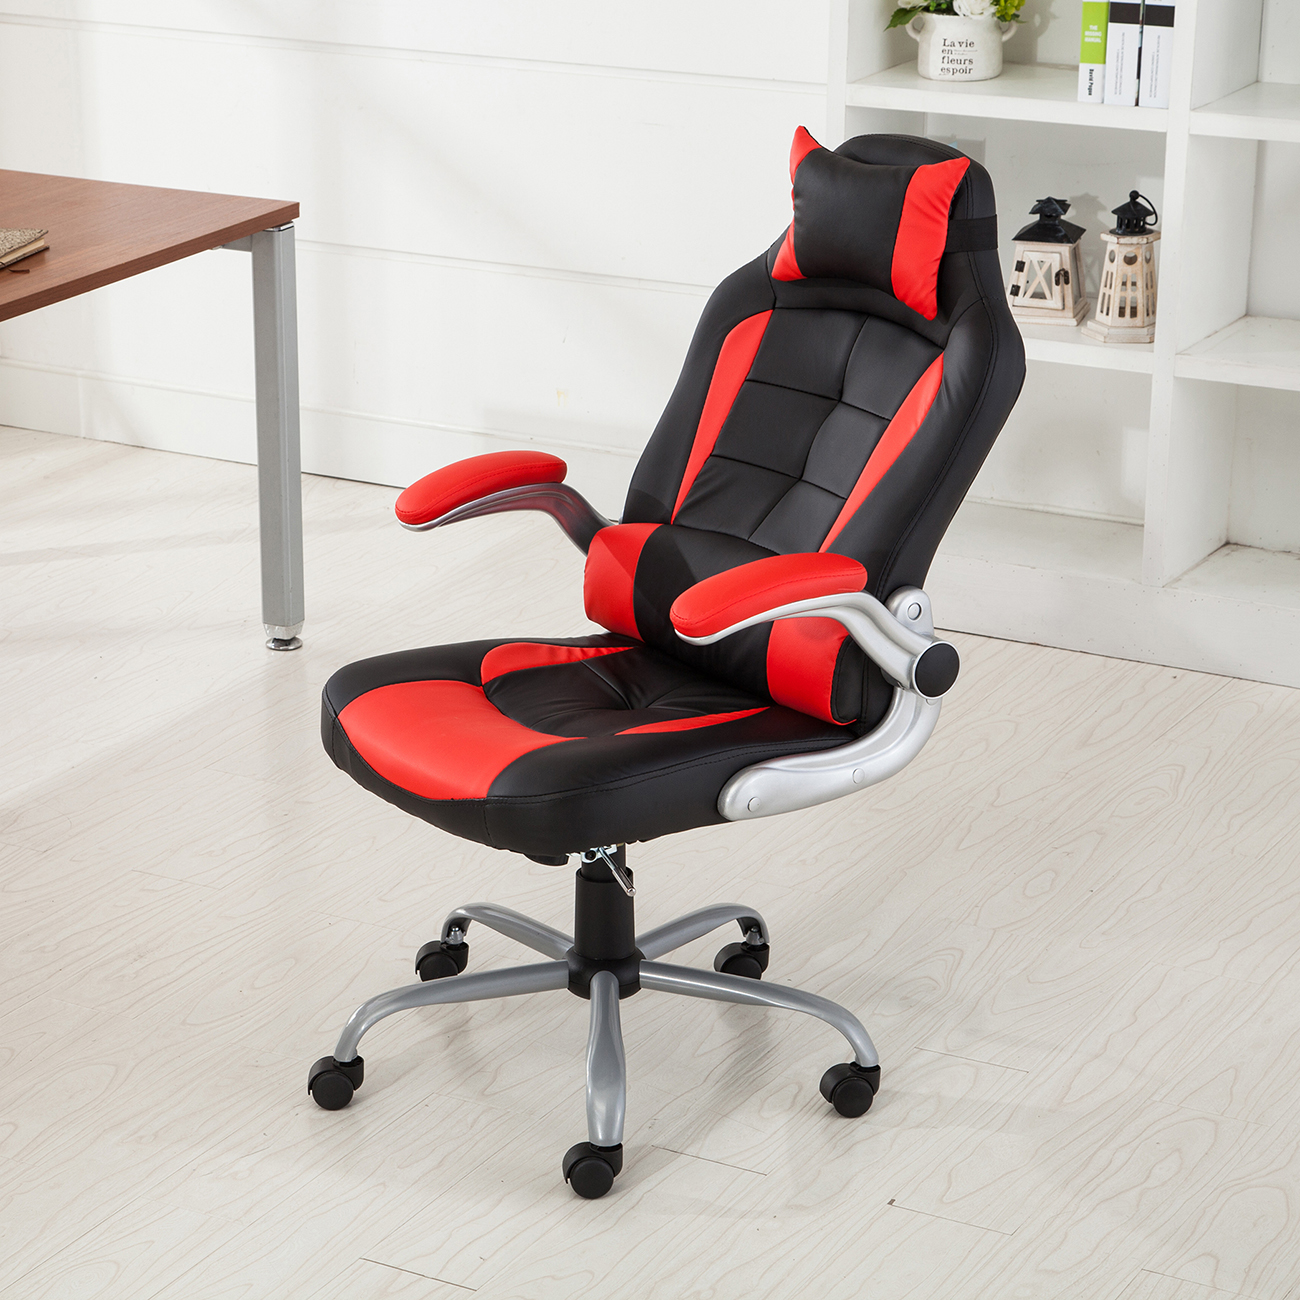 racing office chairs 2 seater round dining table and chair reclining back game padded headrest pu